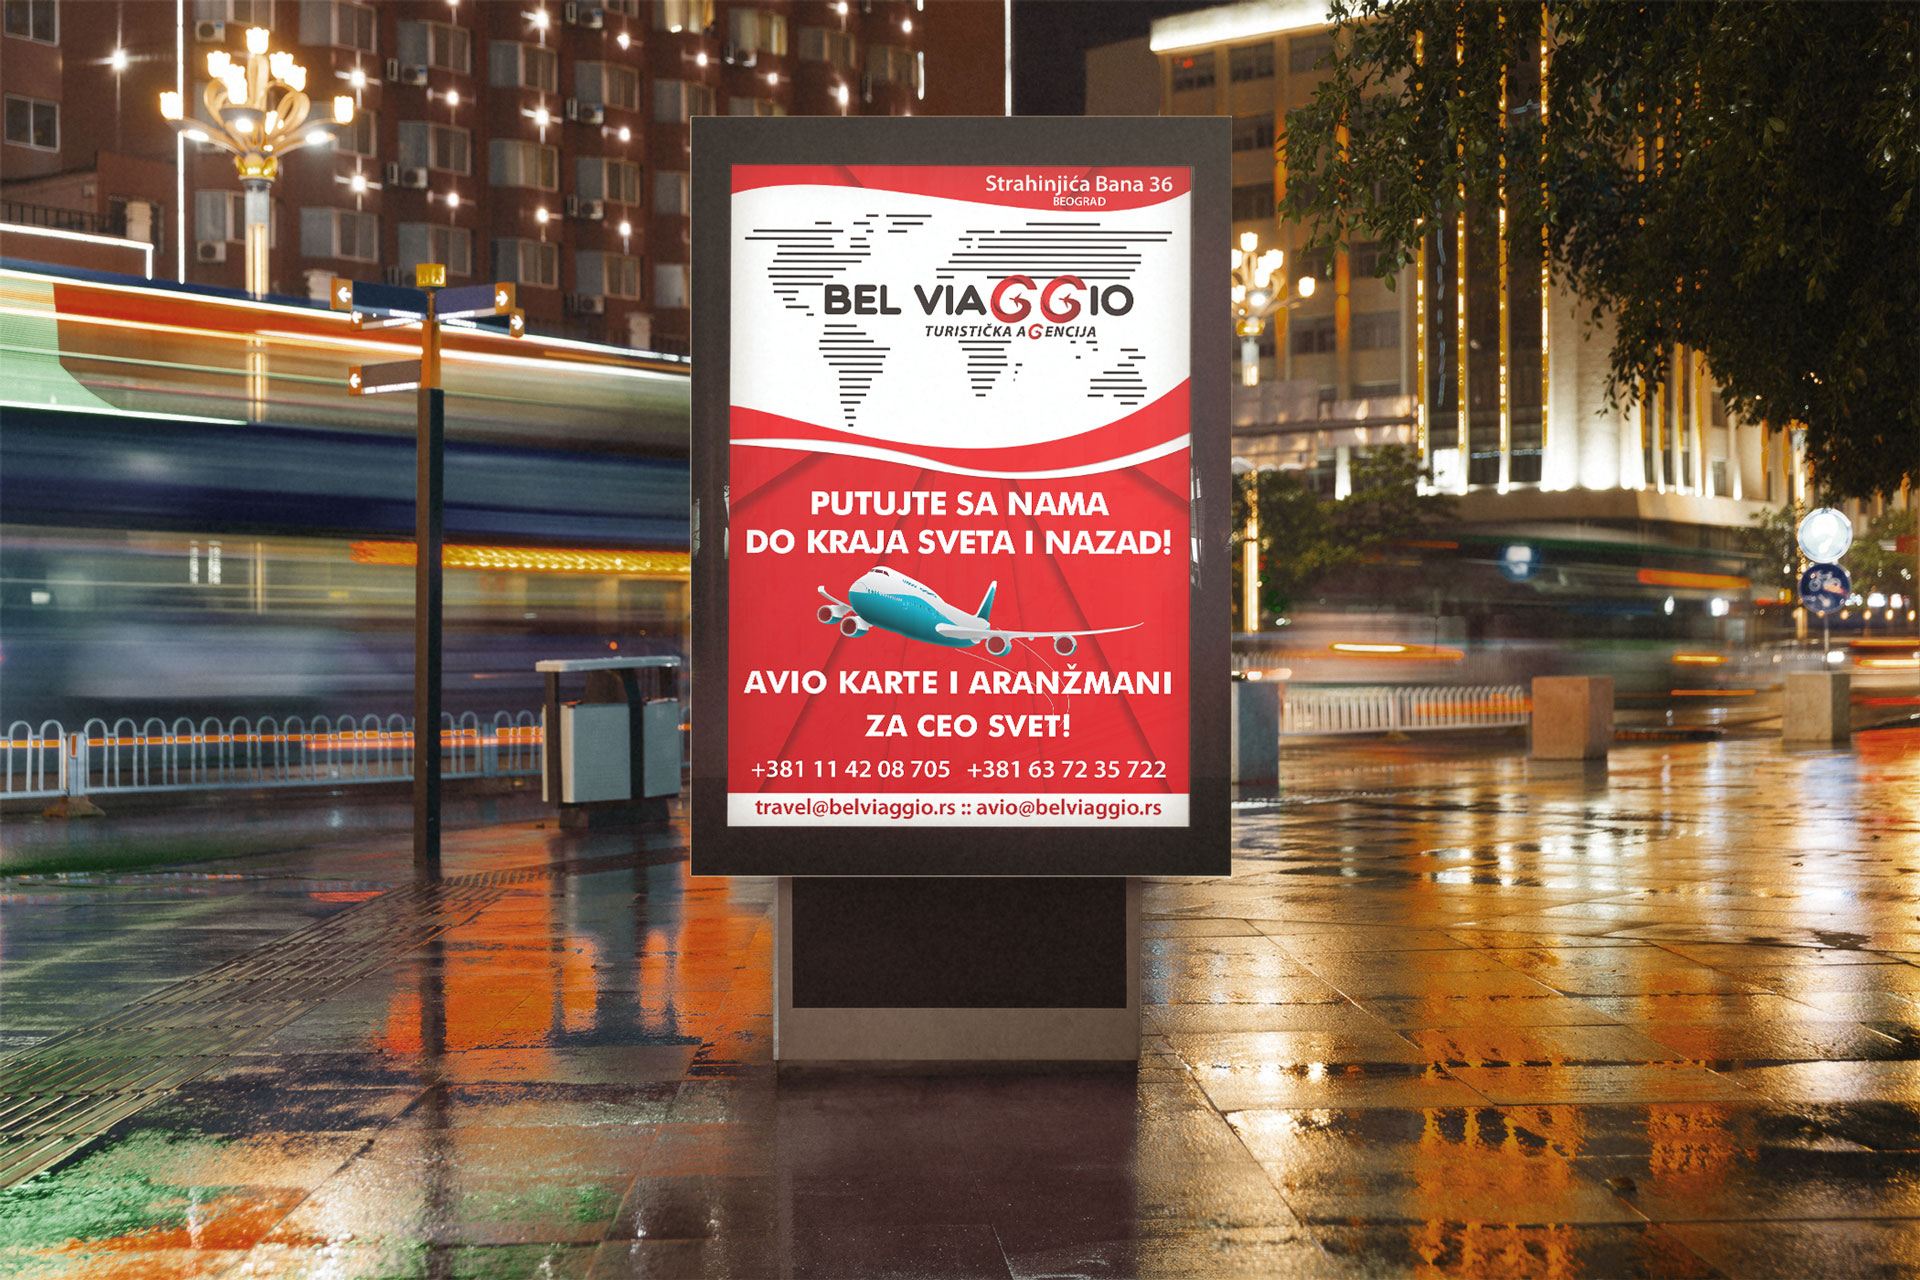 belviaggio travel agency billboard design